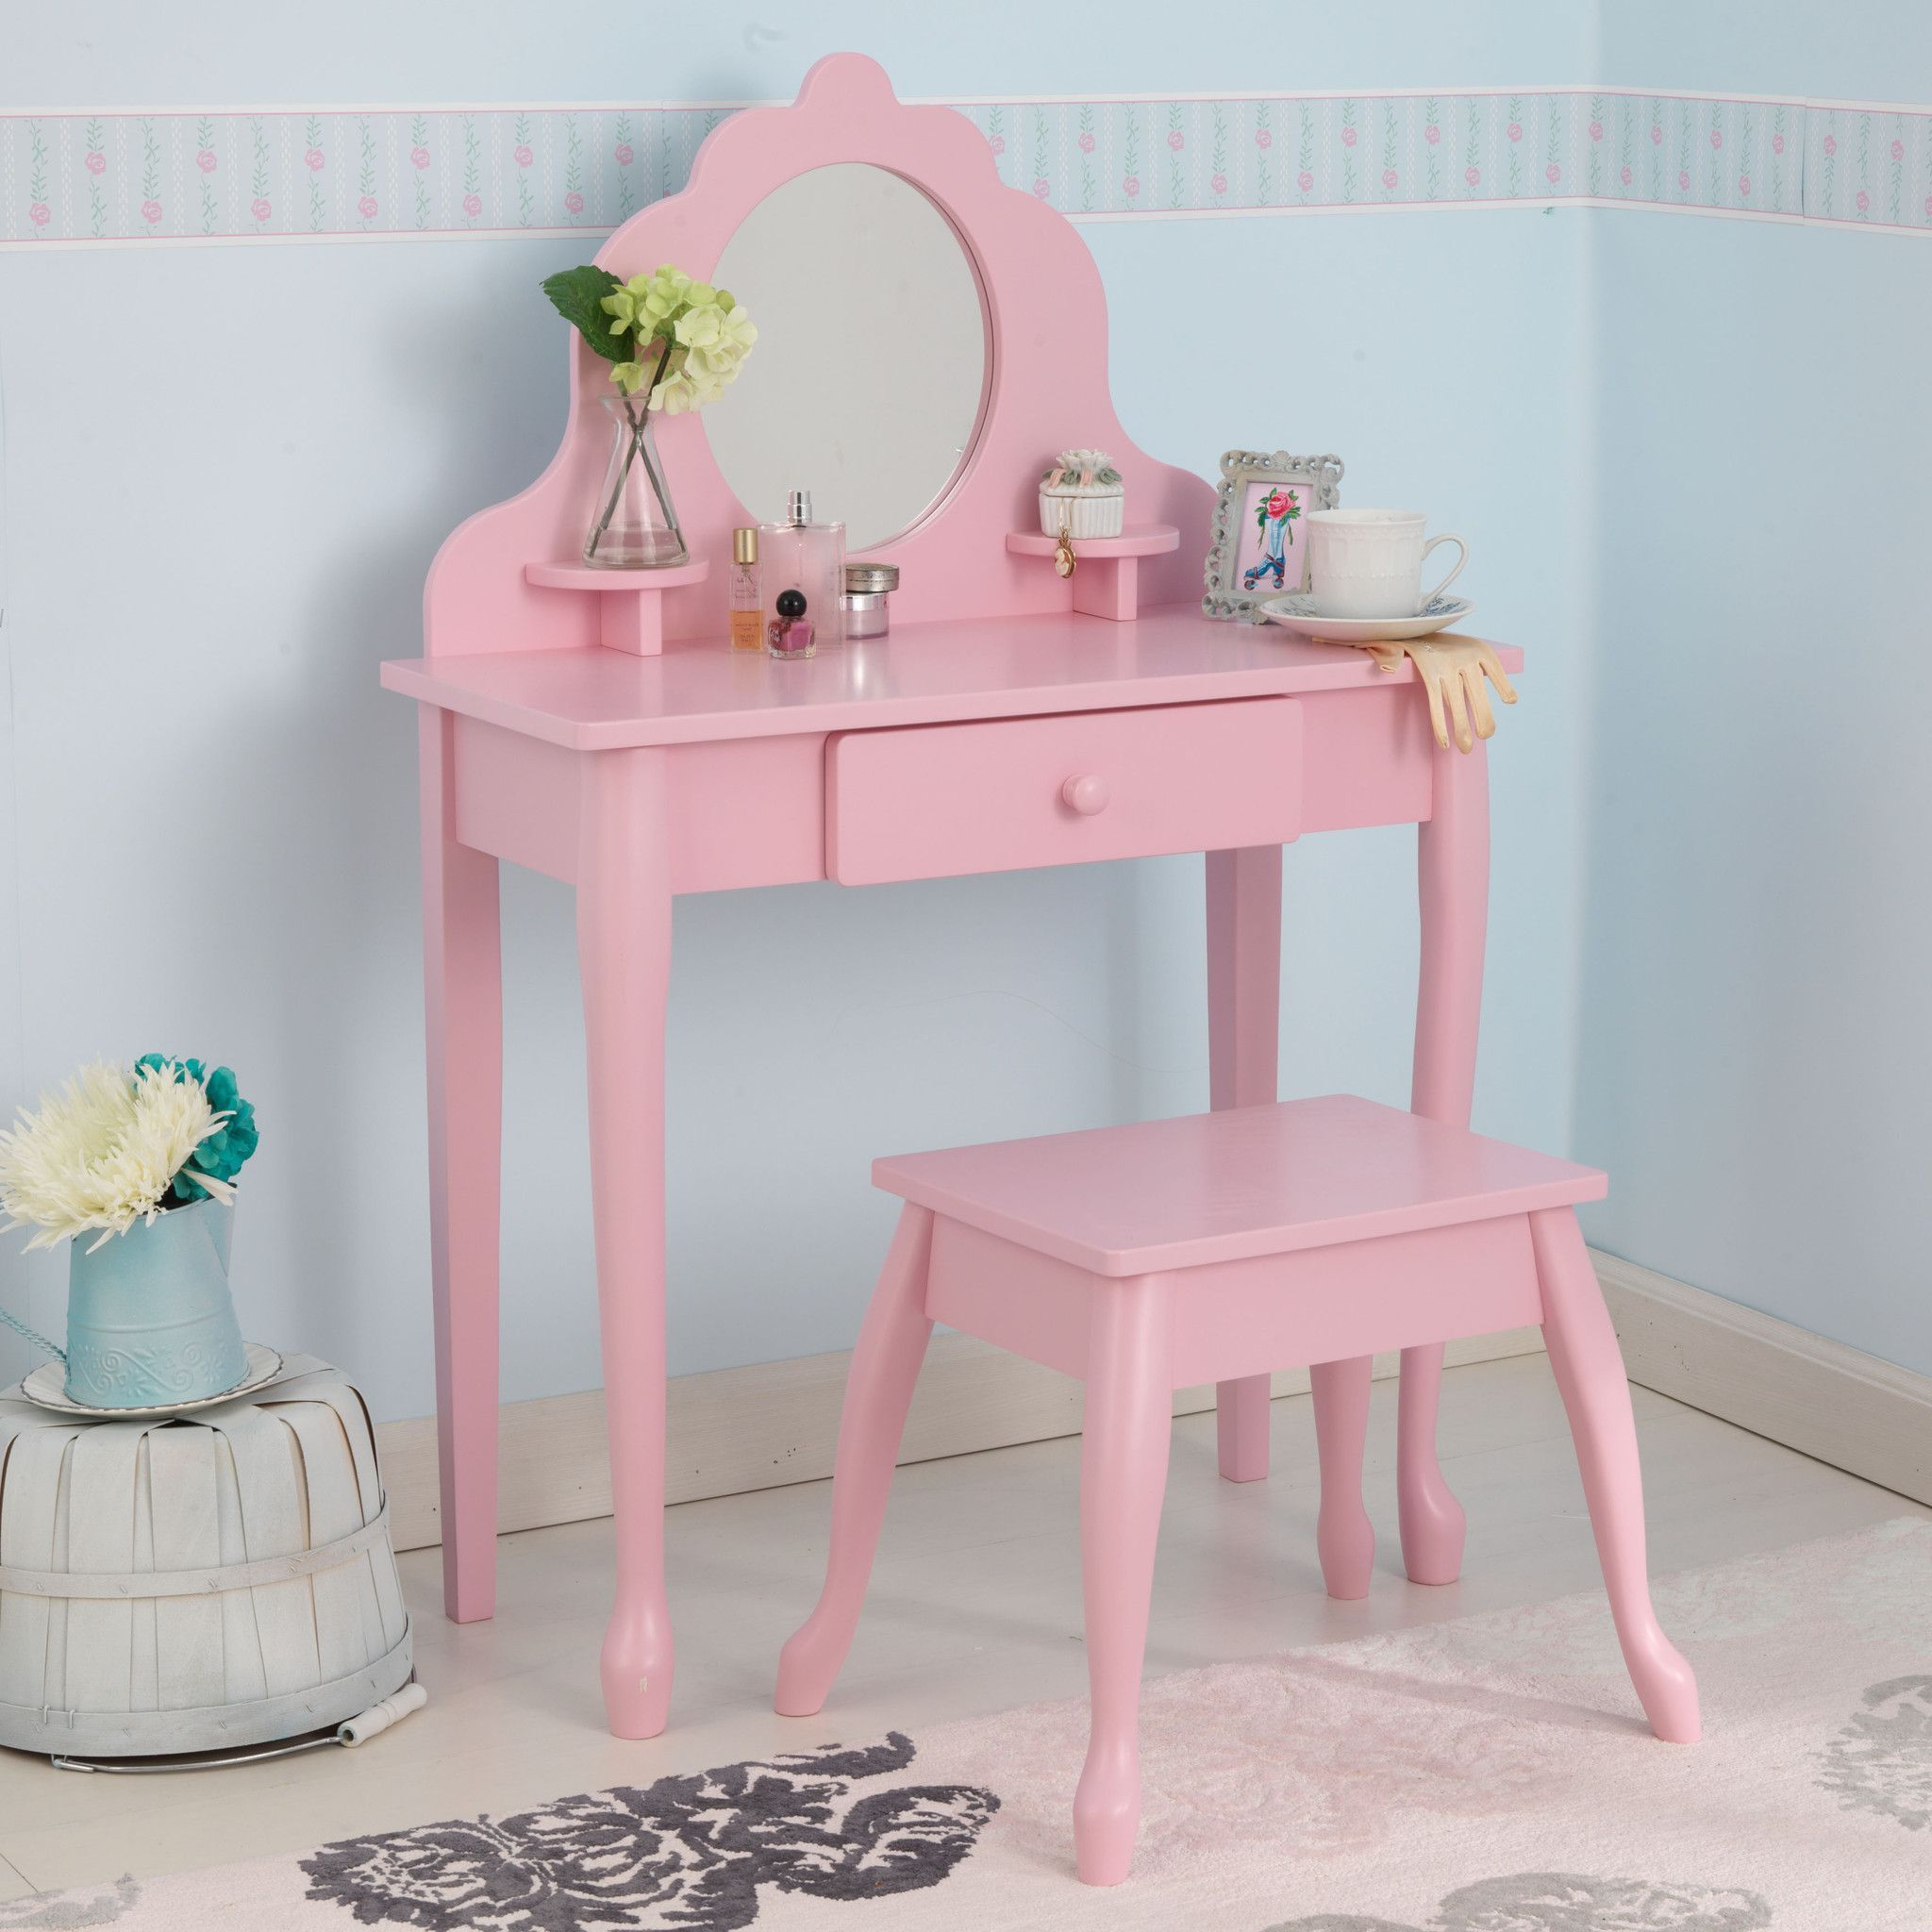 Vertbaudet Coiffeuse Kidkraft Medium Diva Table U Stool Pink Vanity Tables